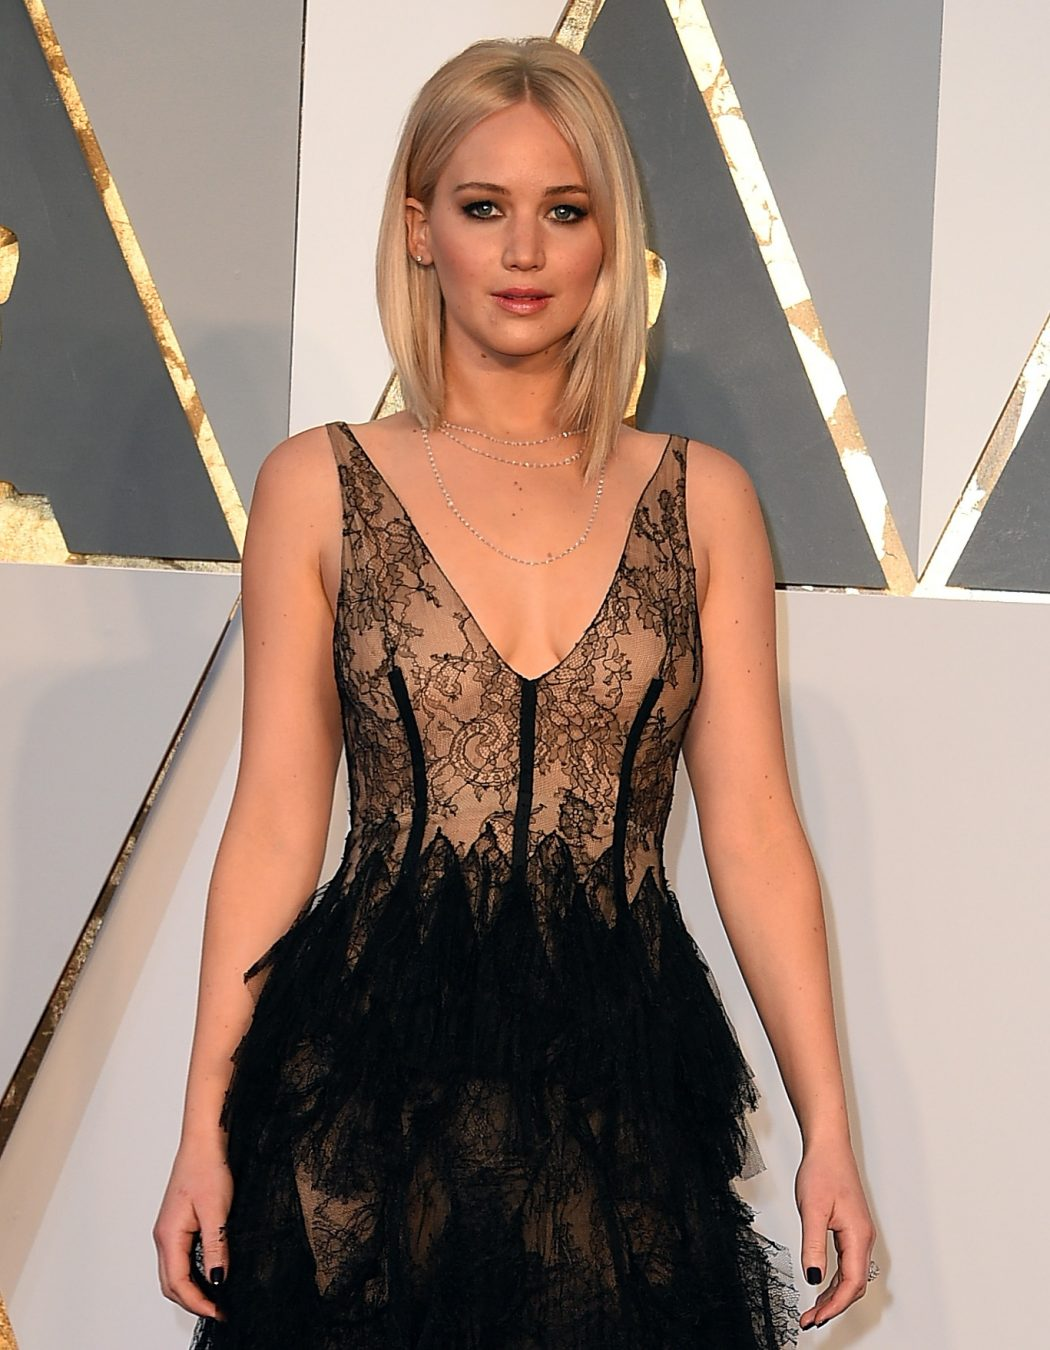 3ca0413eec27c364a722e20ccc3af43f01ecafb8c0898f302f18a7627223b629 Top Best 5 Red Carpet Looks in The 88th Academy Award